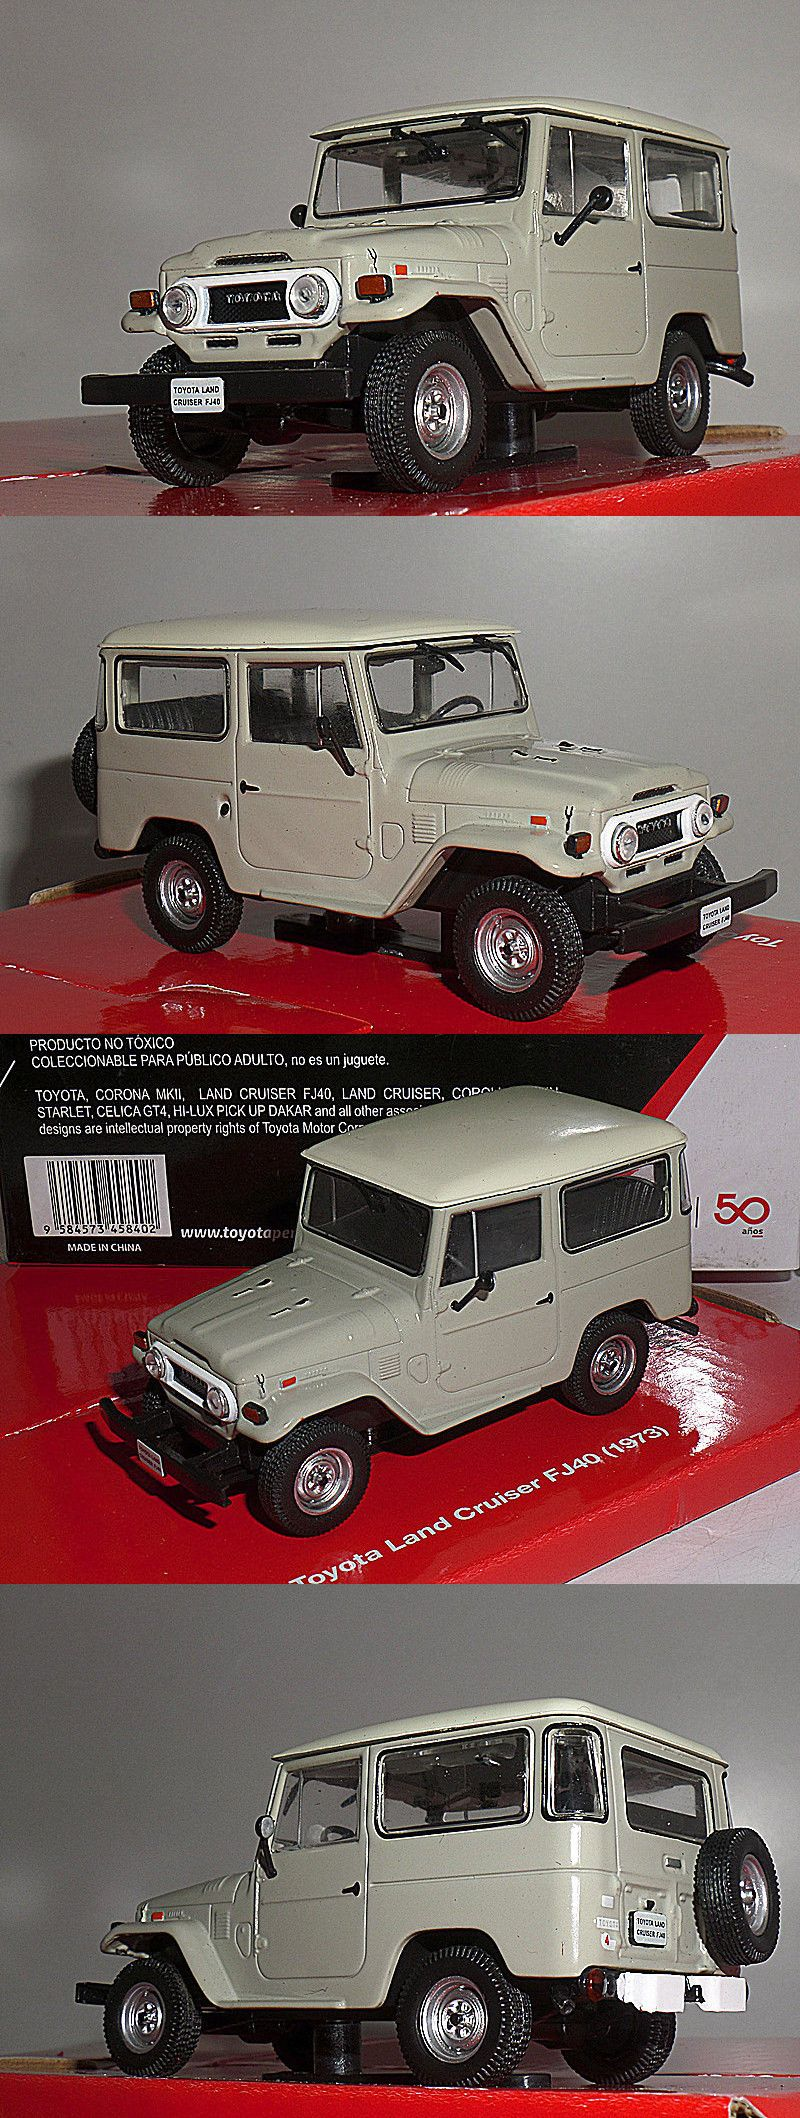 Toyota 50 Anos 1 43 Land Cruiser Fj40 1973 Other Diecast Ebay Vehicle Accs 7315 Buy It Now Only 365 On